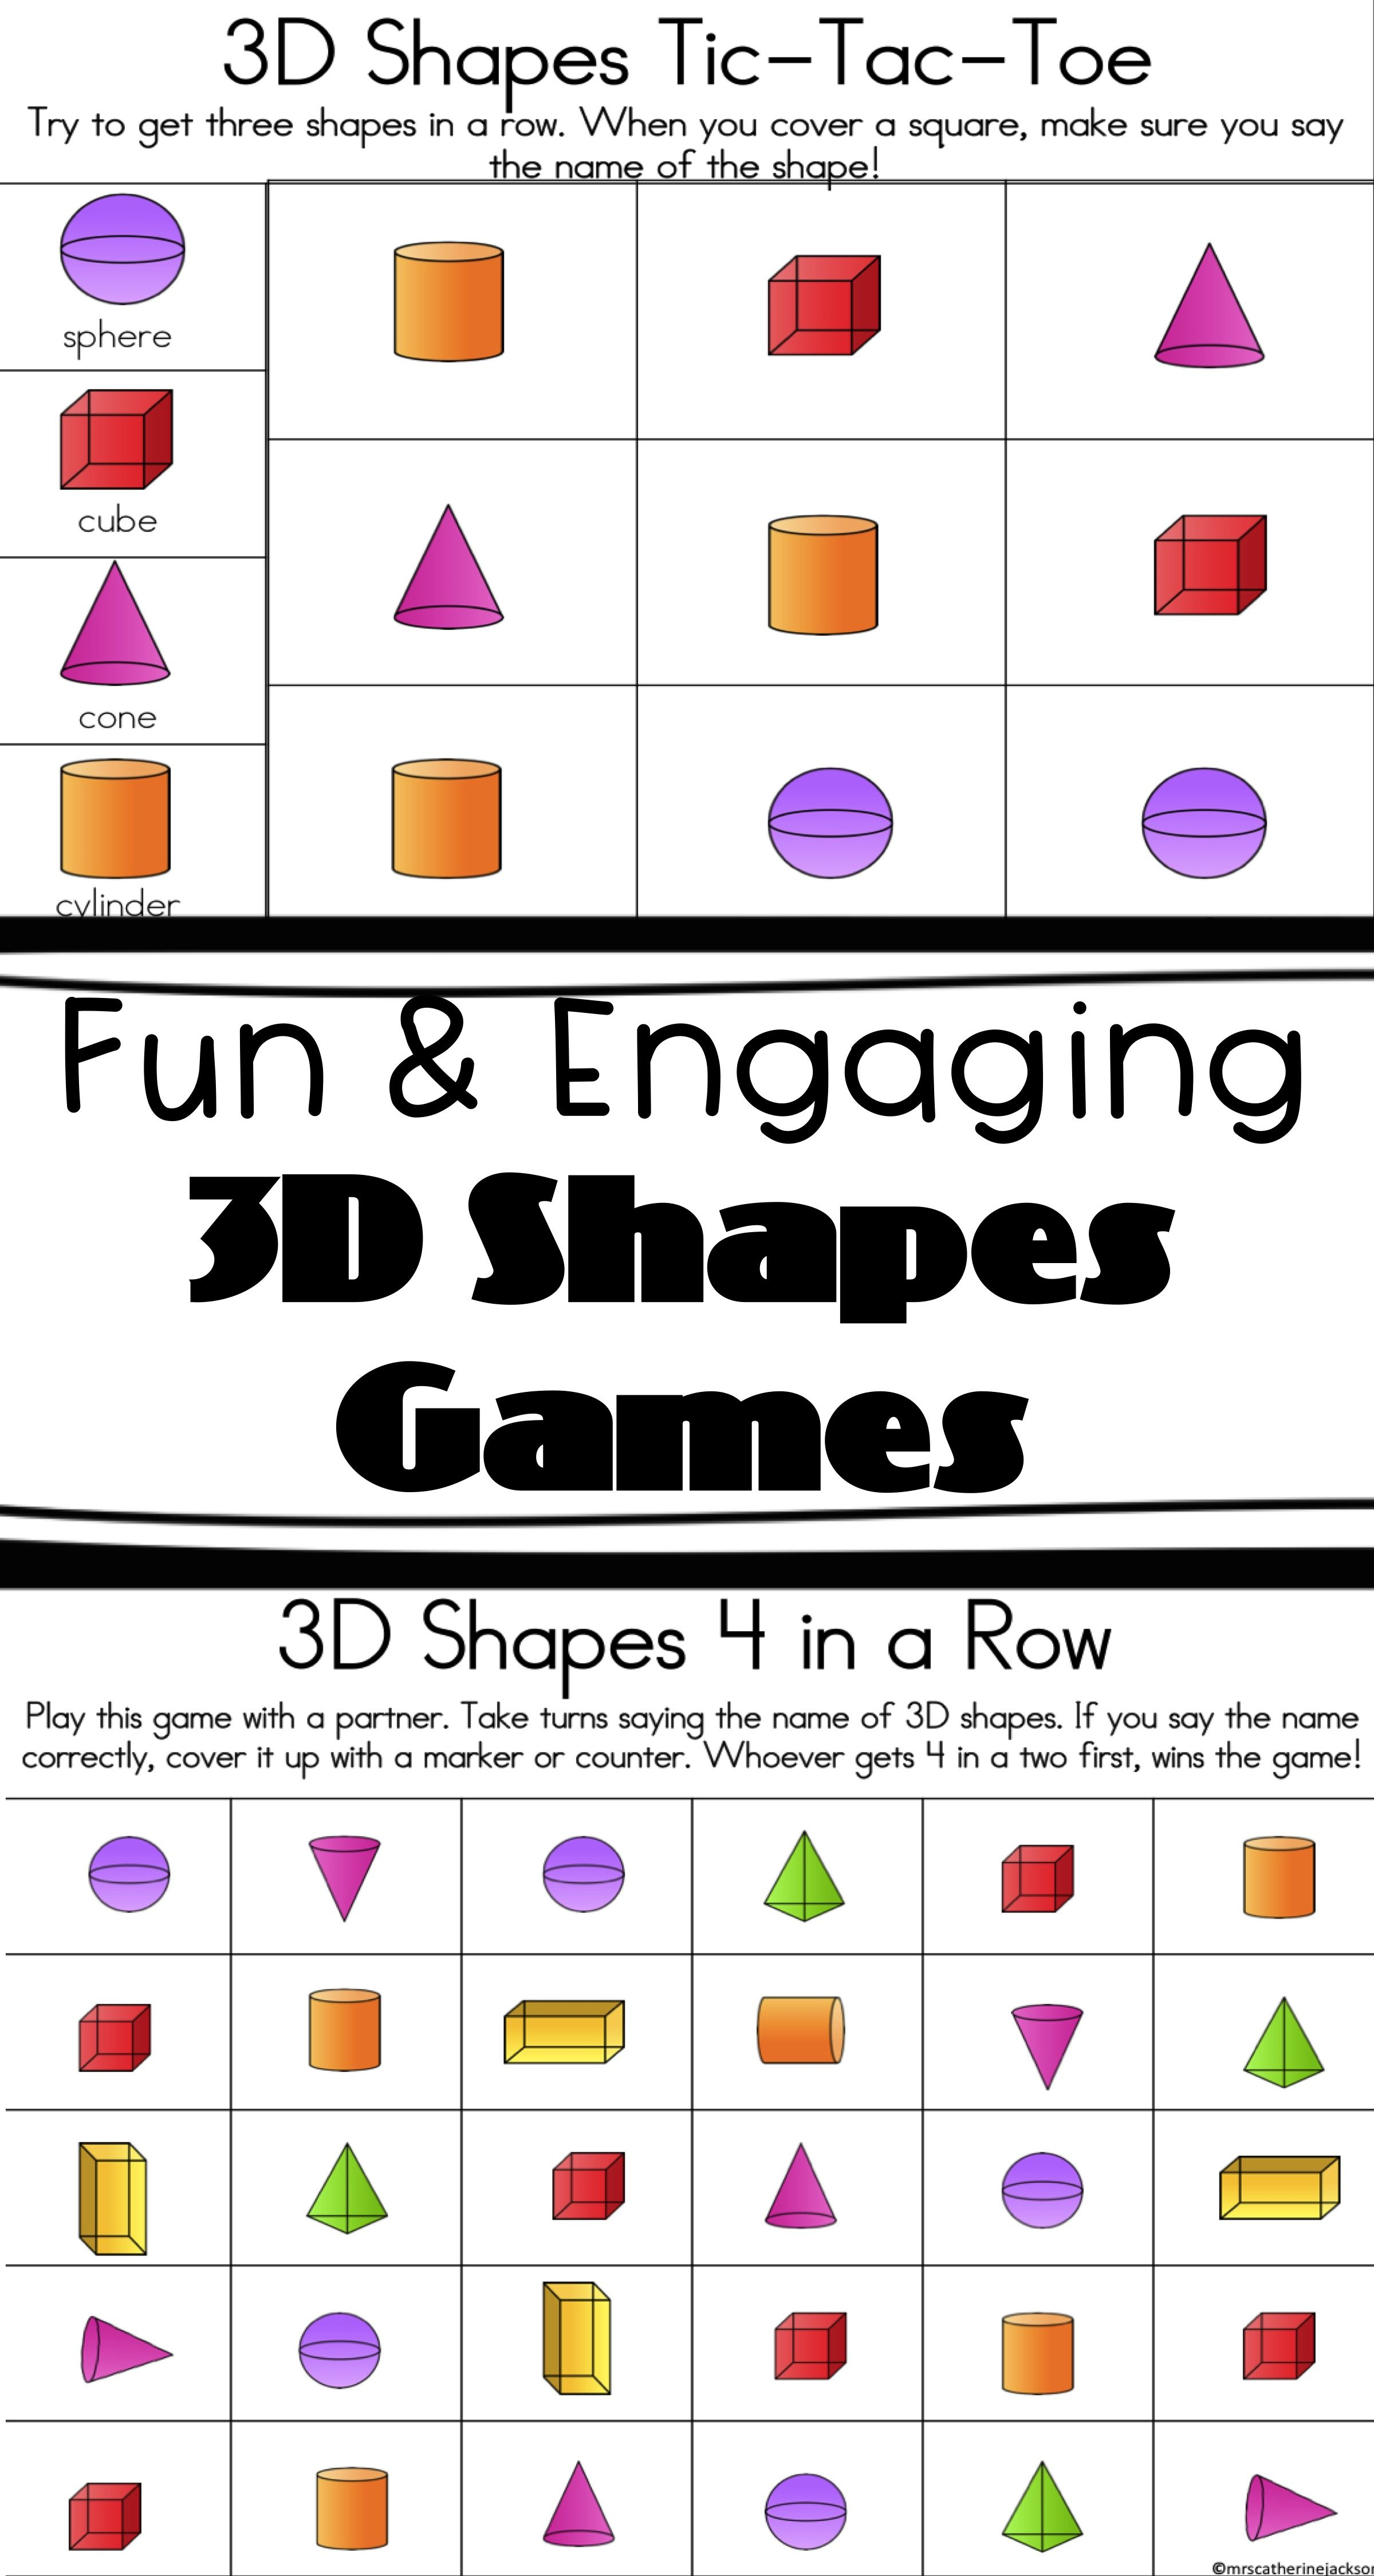 Three Dementional Shapes Worksheet   Printable Worksheets and Activities  for Teachers [ 4499 x 2399 Pixel ]